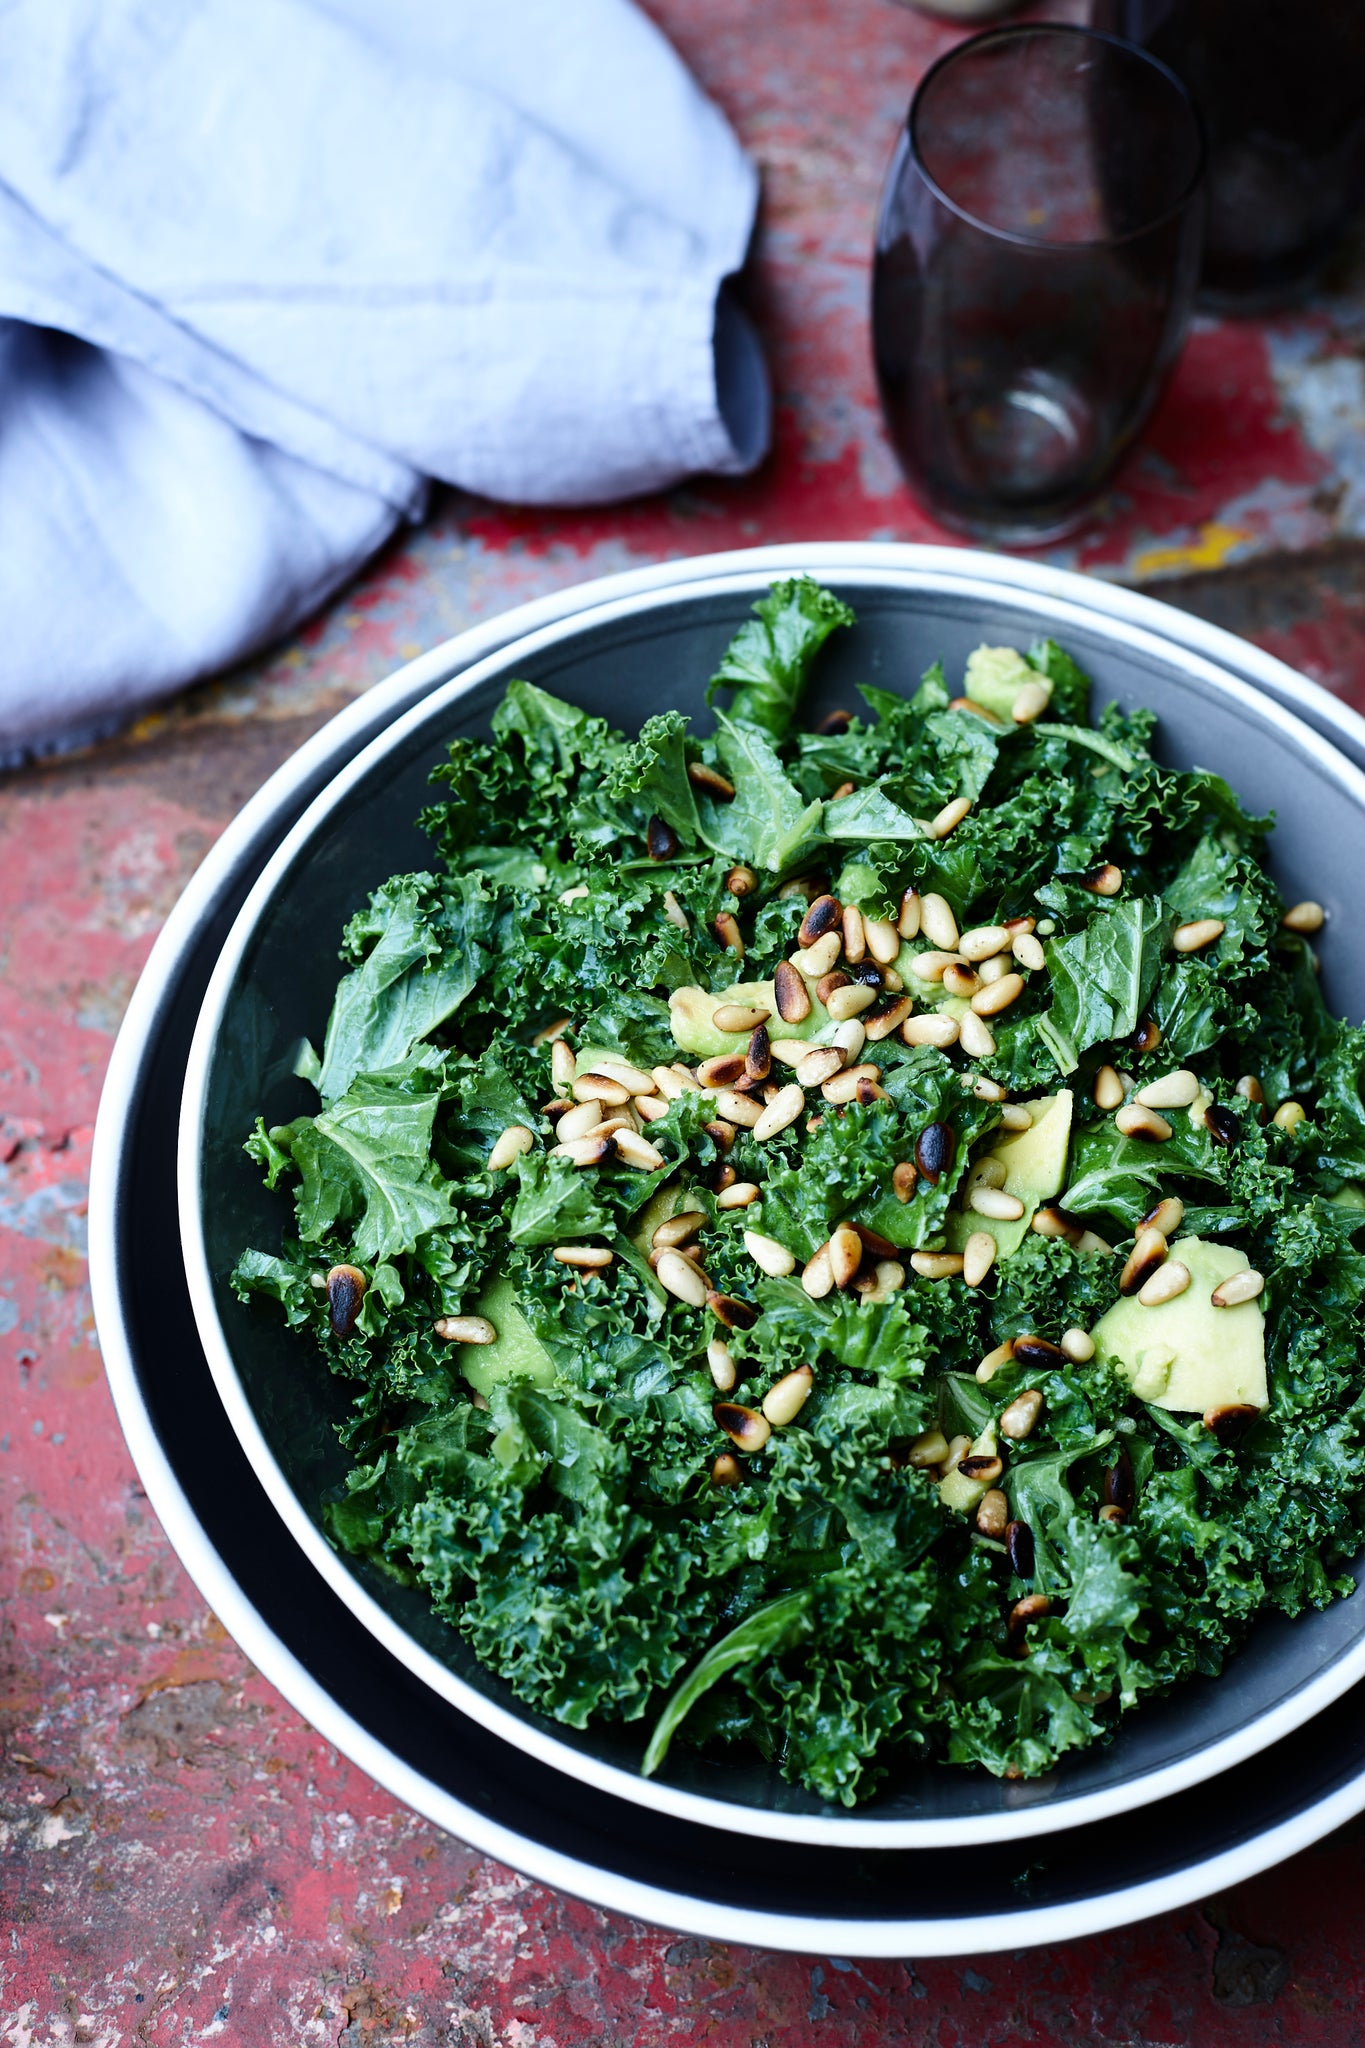 BABY KALE SALAD WITH PINE NUTS, PARMESAN & LEMON VINAIGRETTE